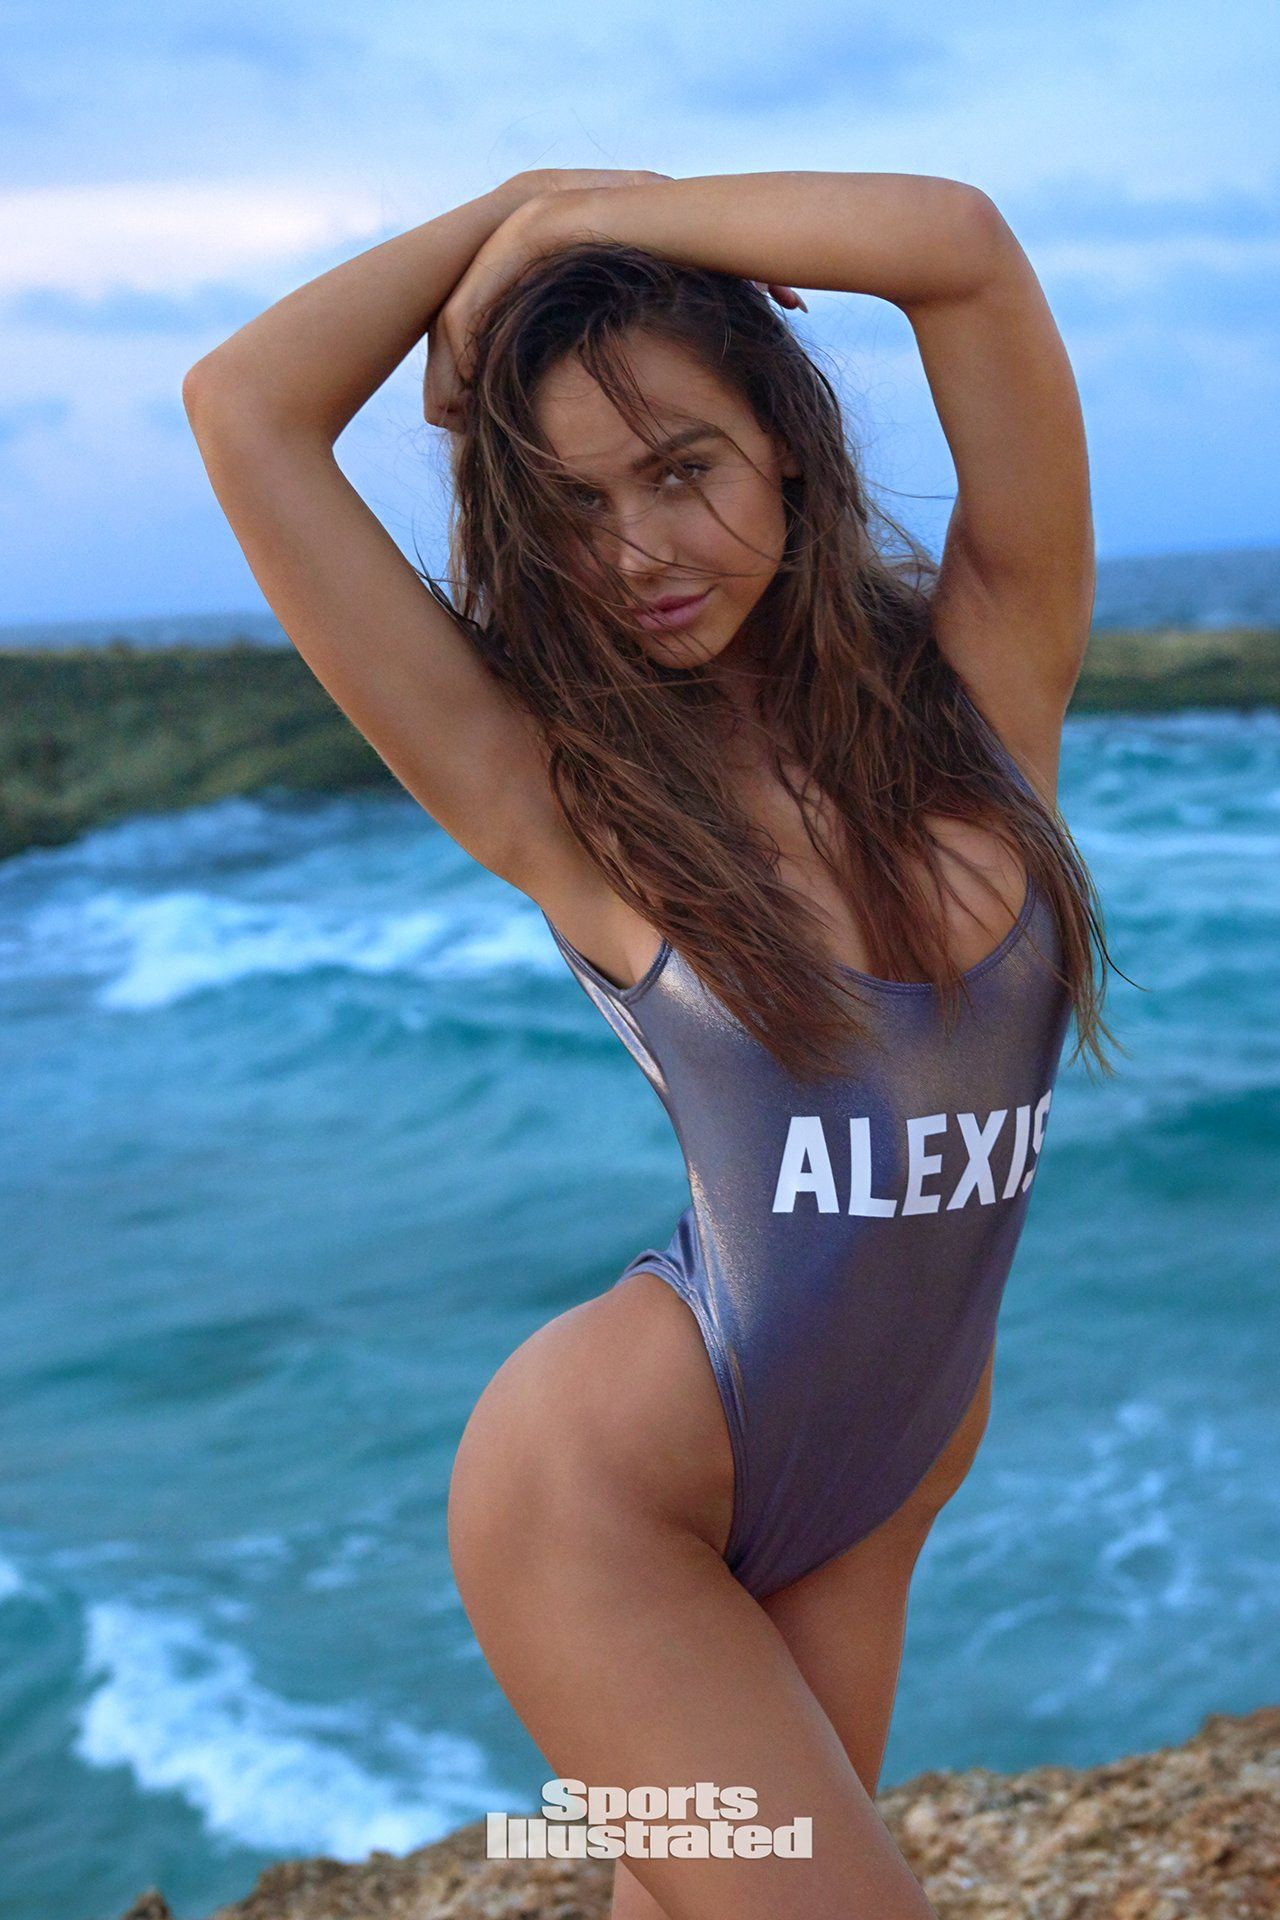 Rookie of the Year: Alexis Ren posiert in der Sports Illustrated Swimsuit Edition 2018 10